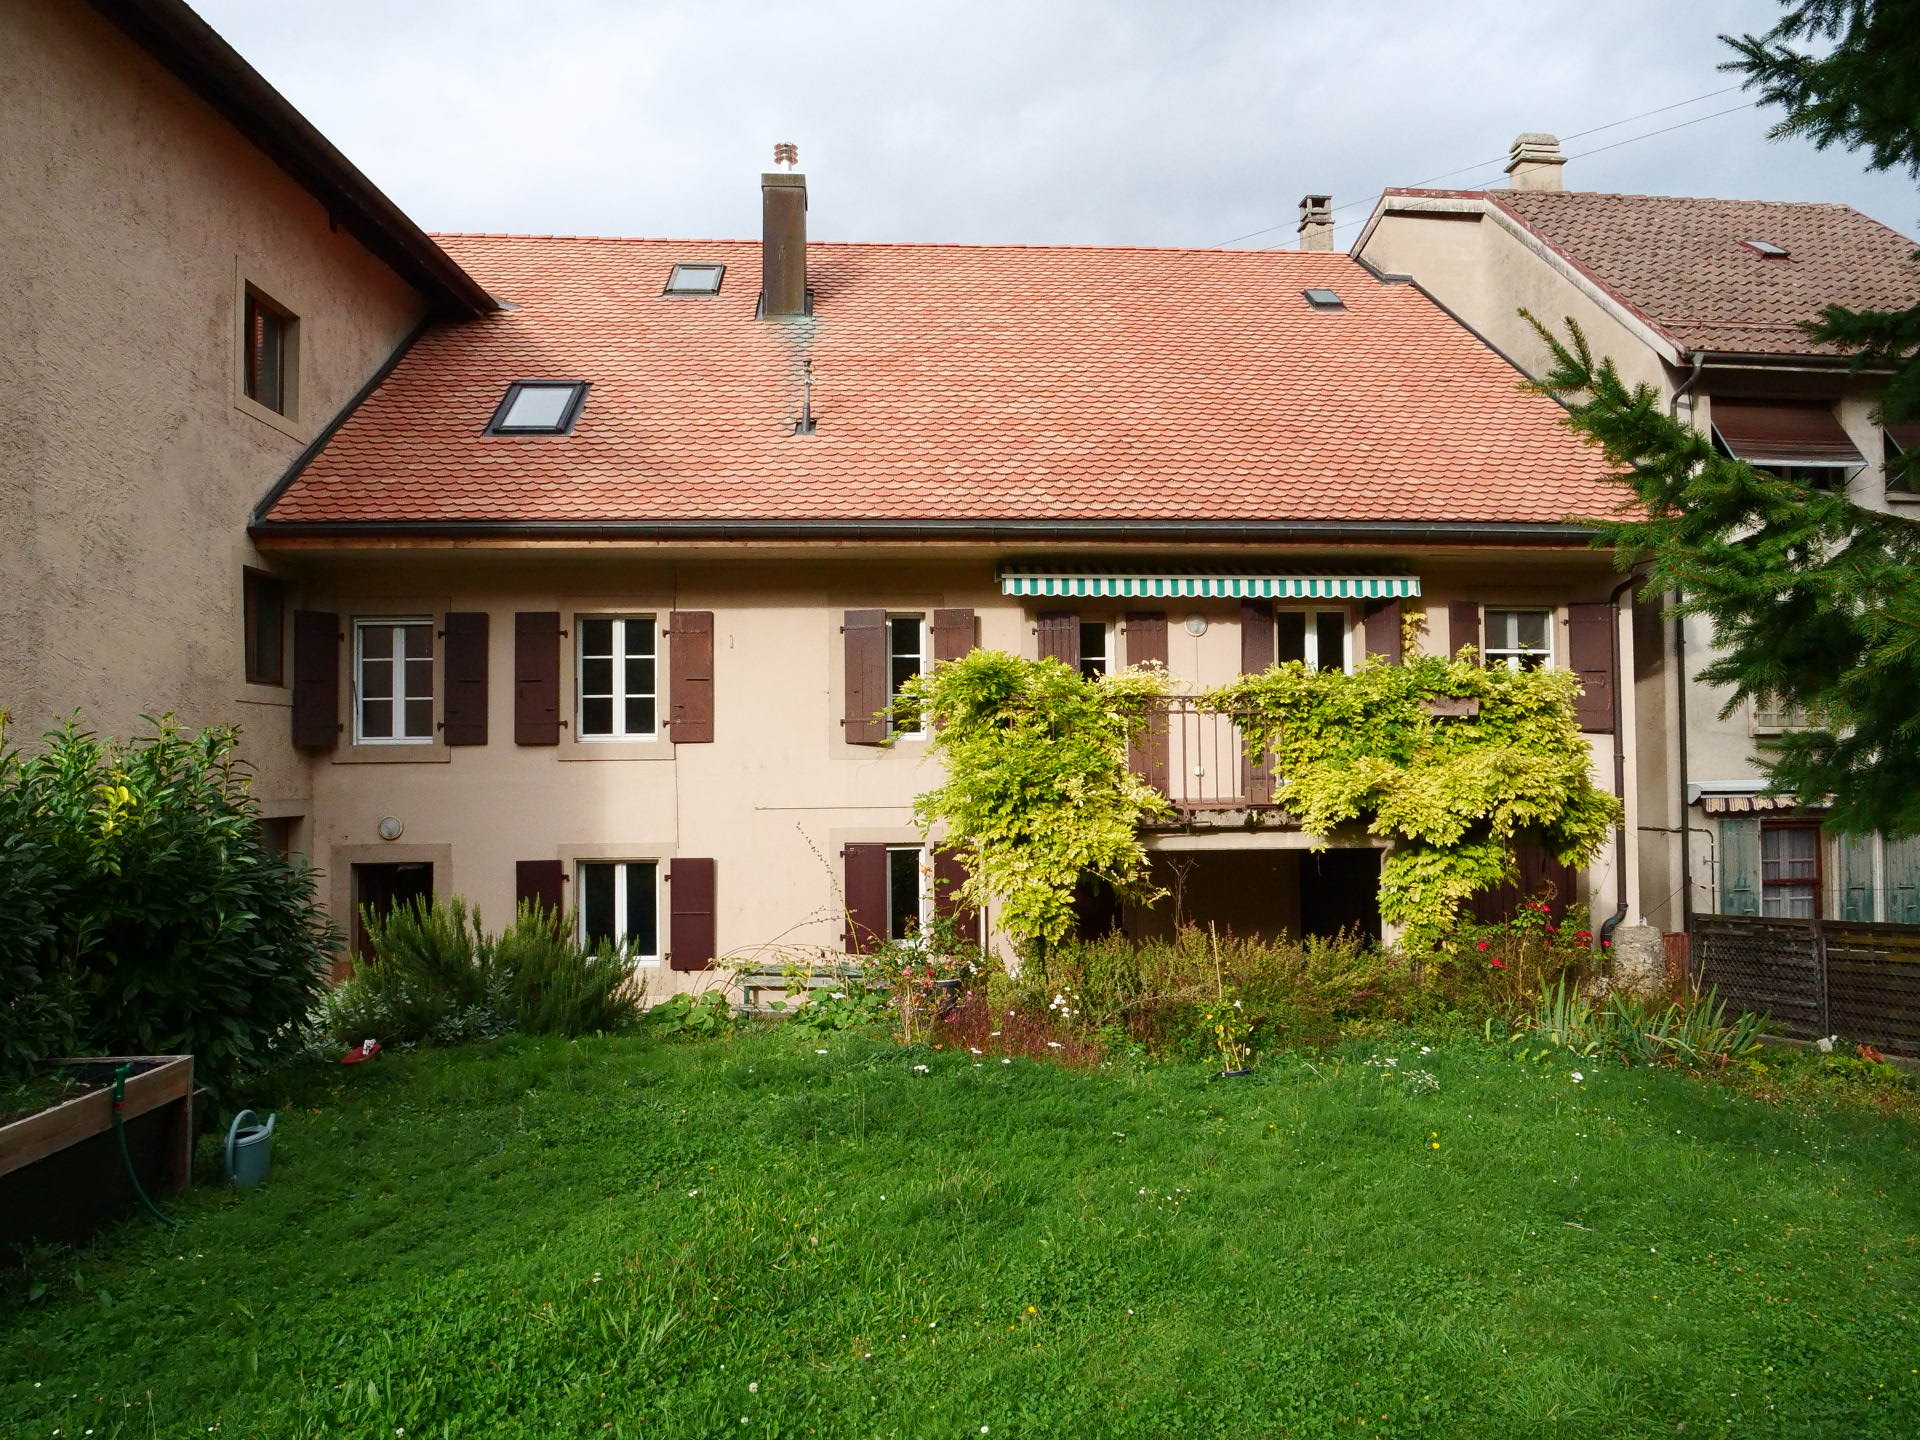 Transformation d'une maison villageoise